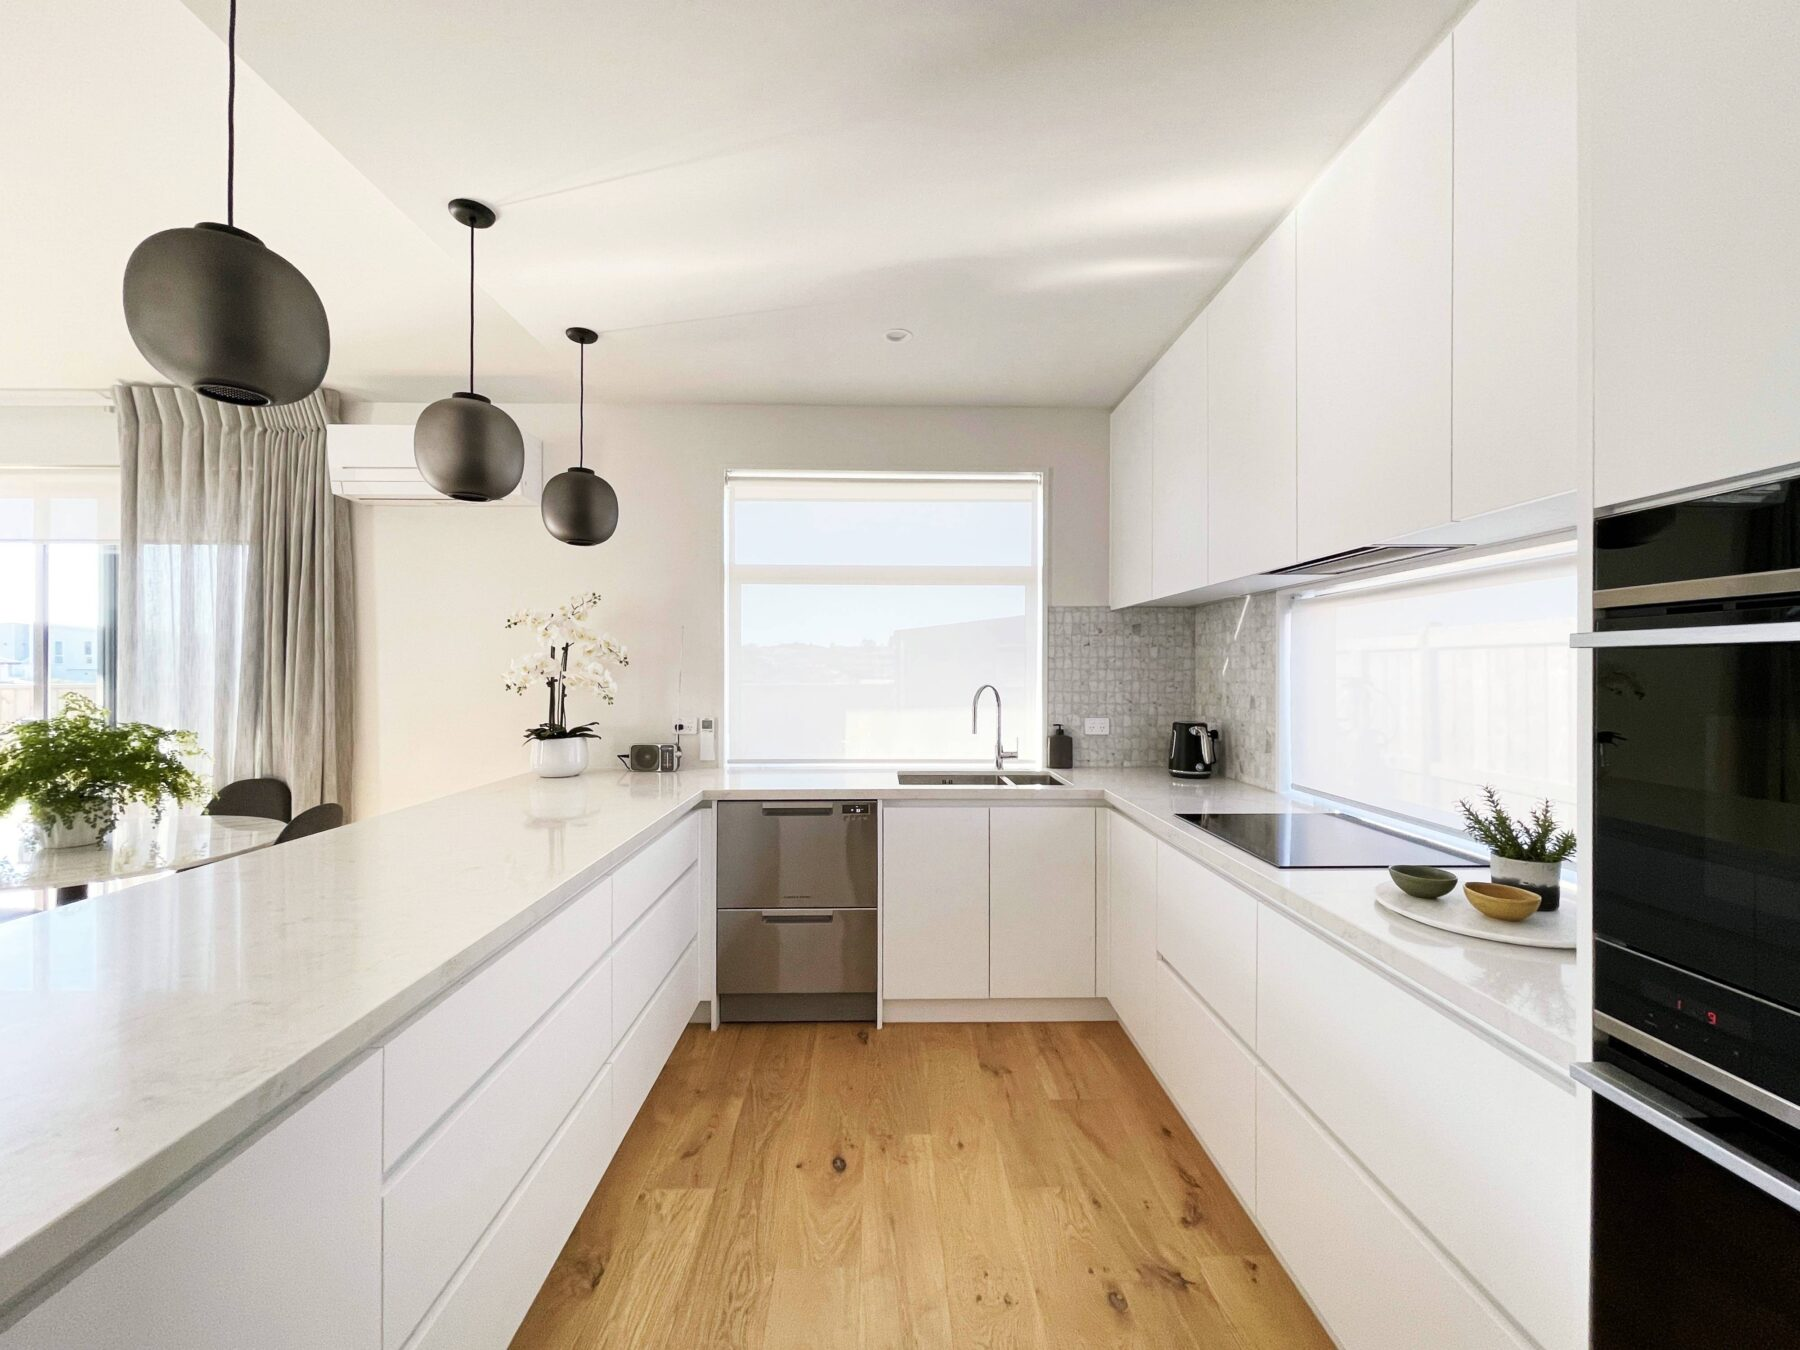 Modern white kitchen with light stone top and wooden flooring, with statement black pendant lights